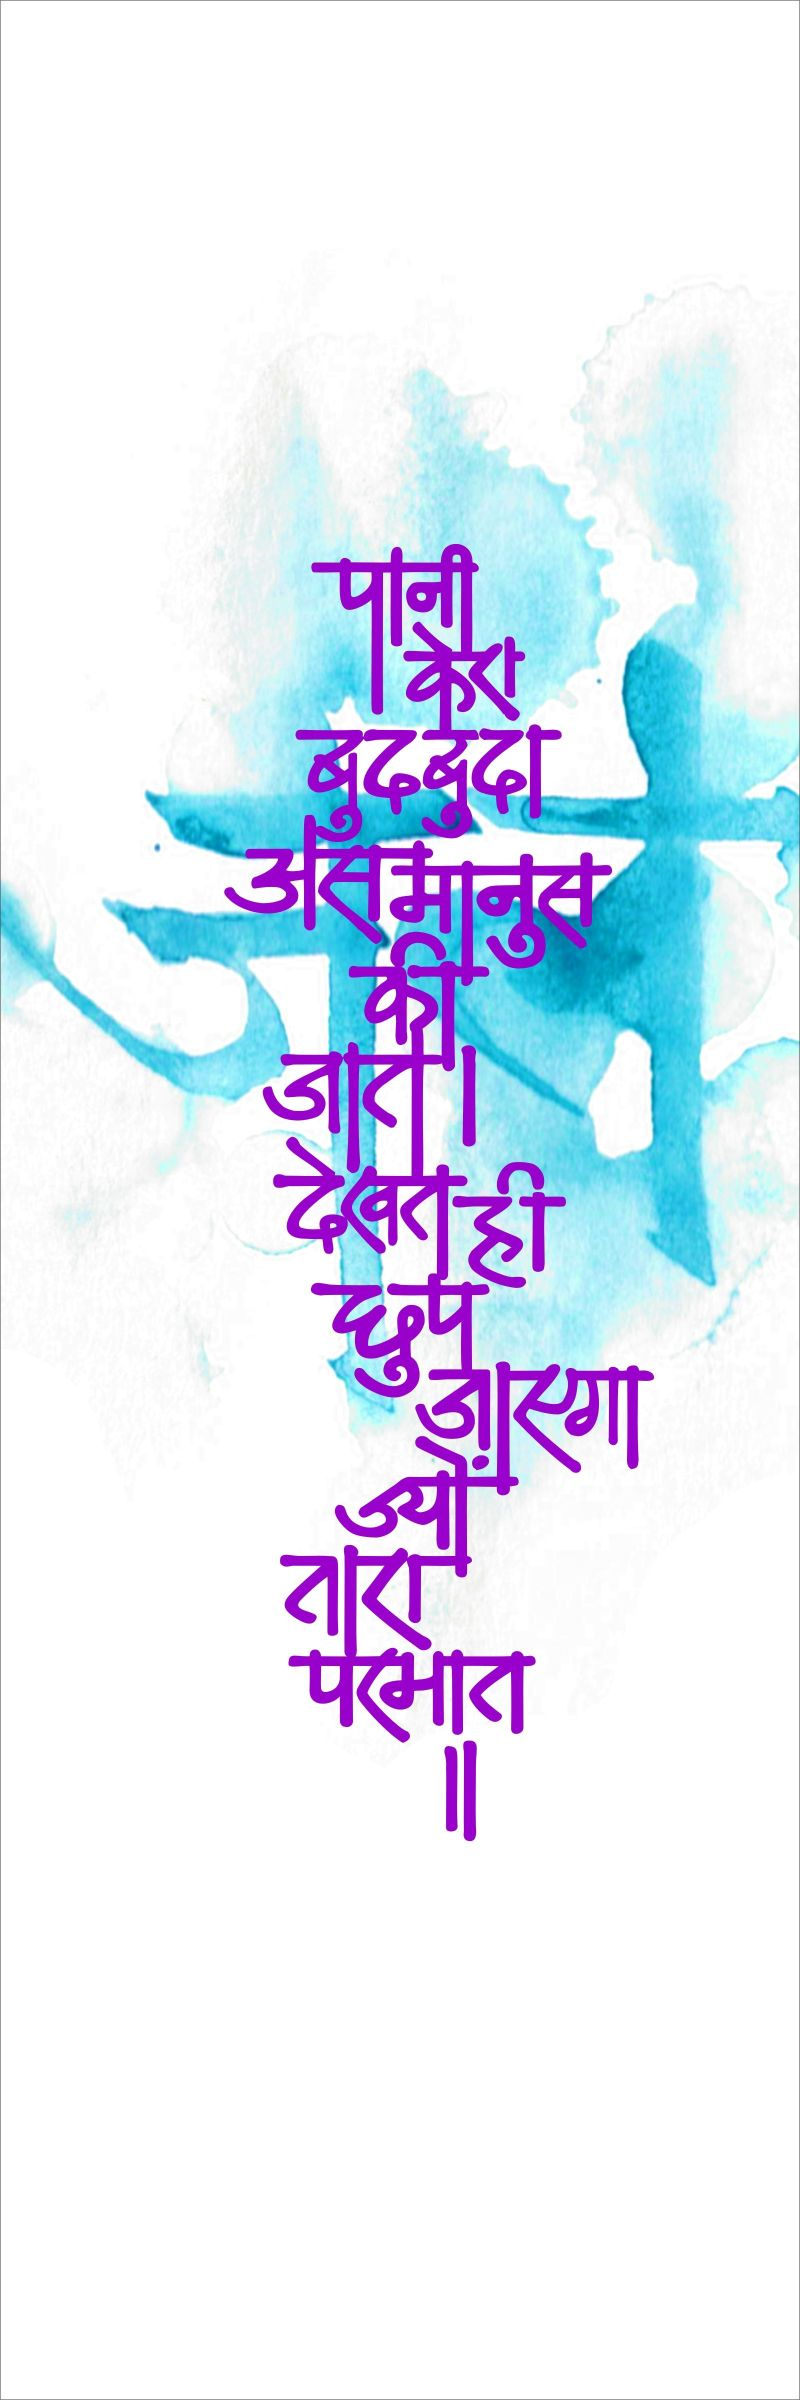 Pin by R u : online niche on vibrant | Hindi calligraphy fonts